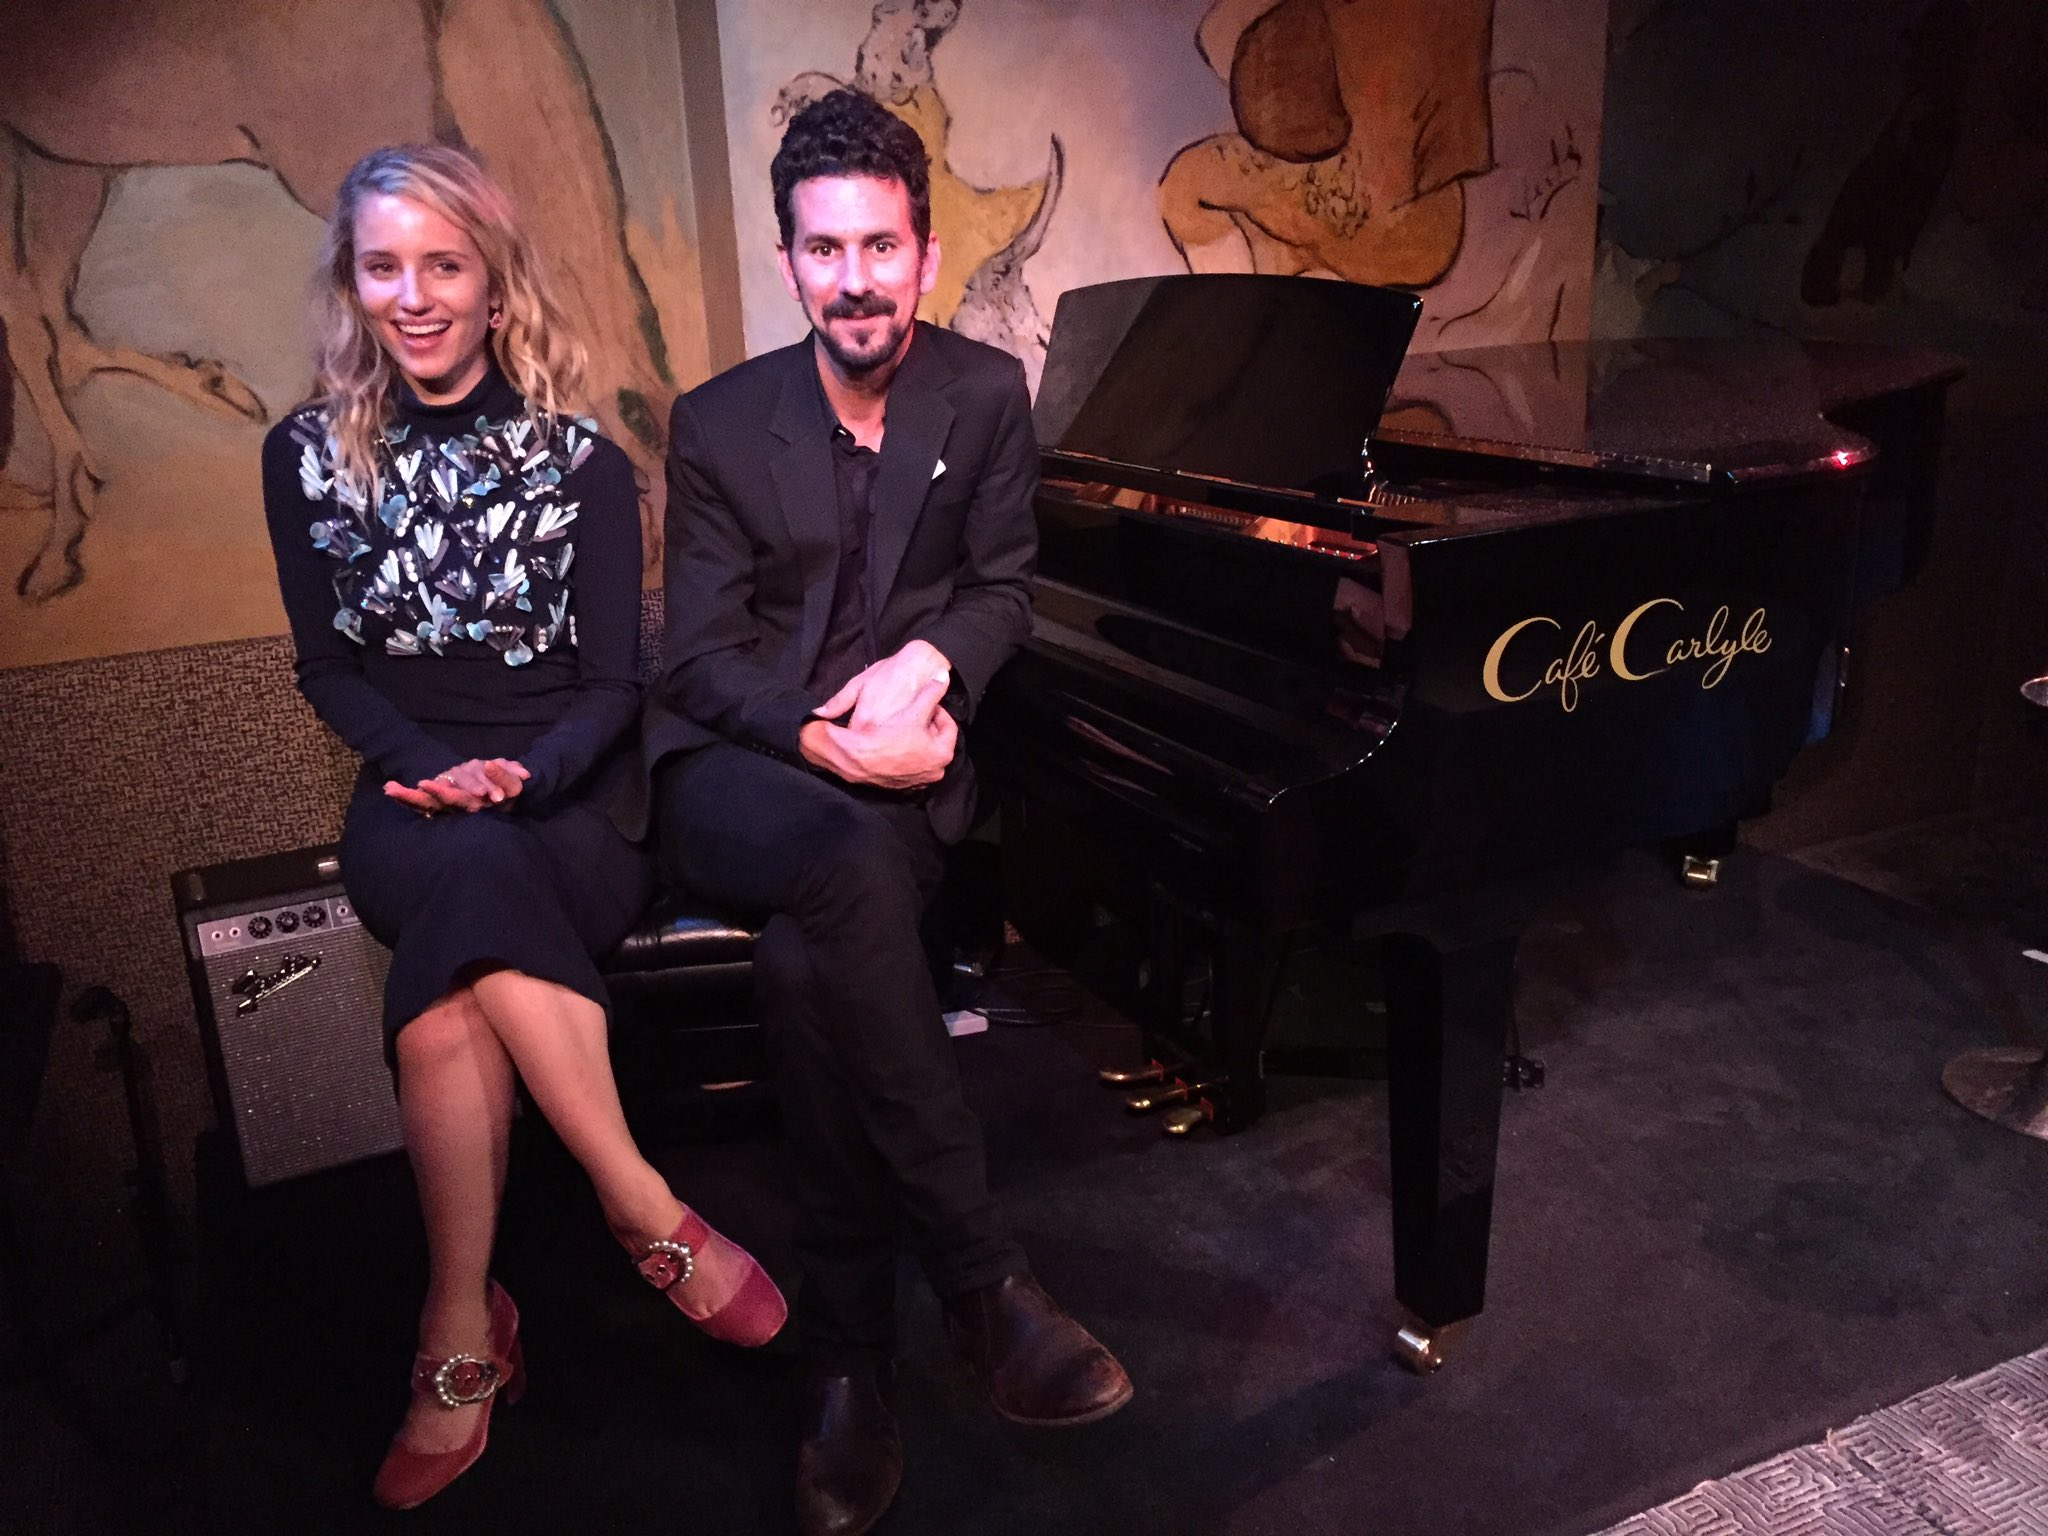 Post five night run bliss with @gilllandry at @CafeCarlyle. https://t.co/T2oGgml6MX